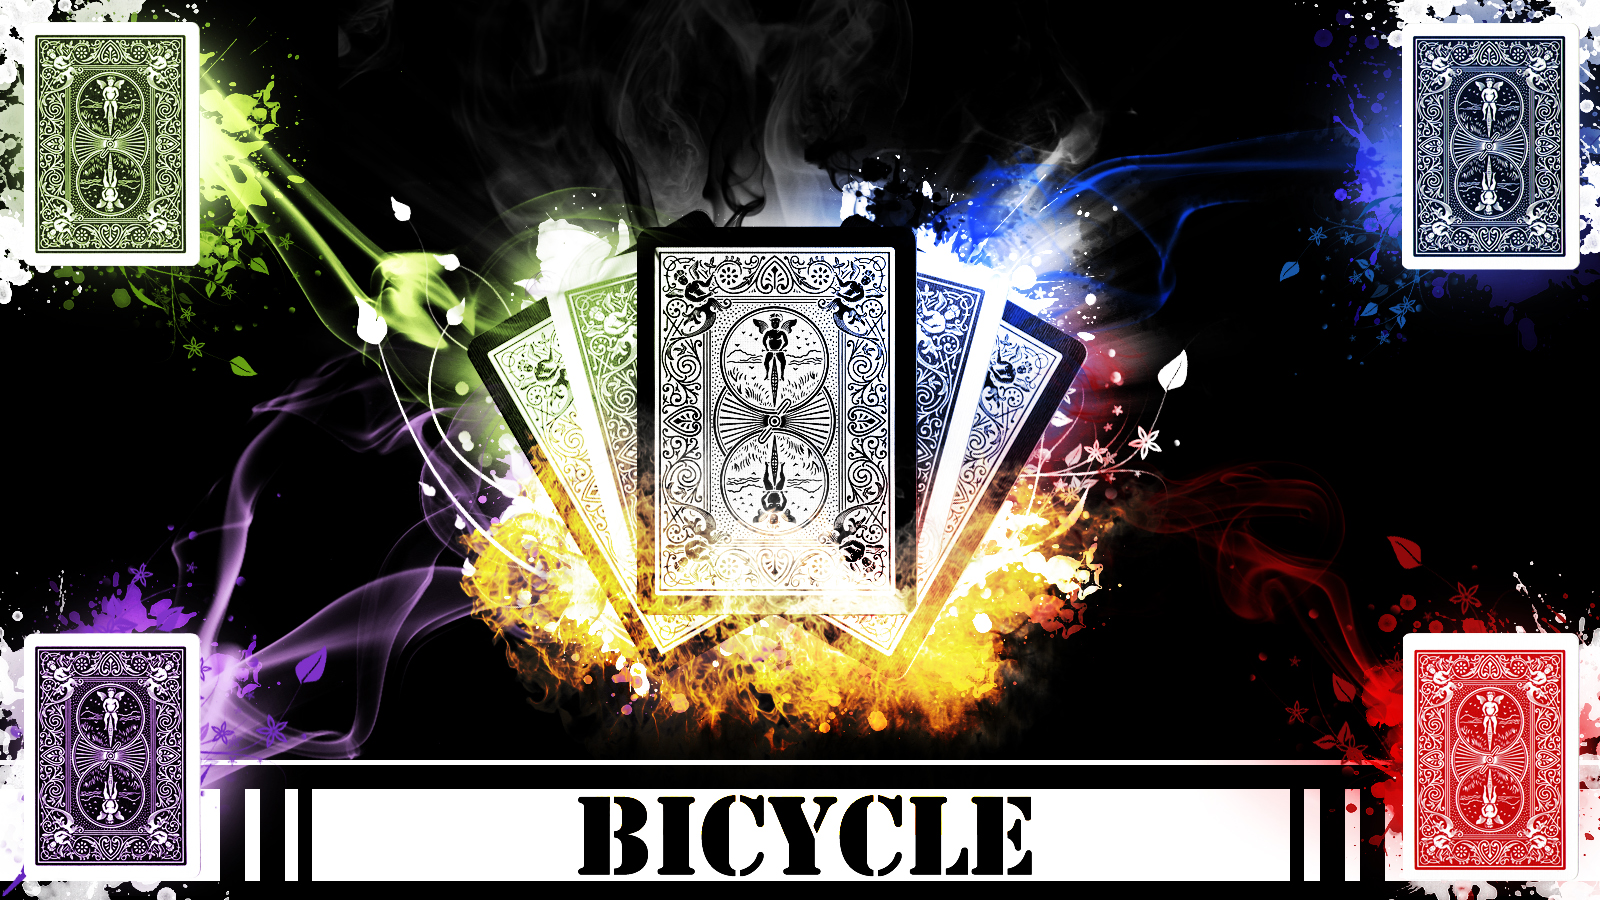 Bicycle Cards Wallpaper - WallpaperSafari